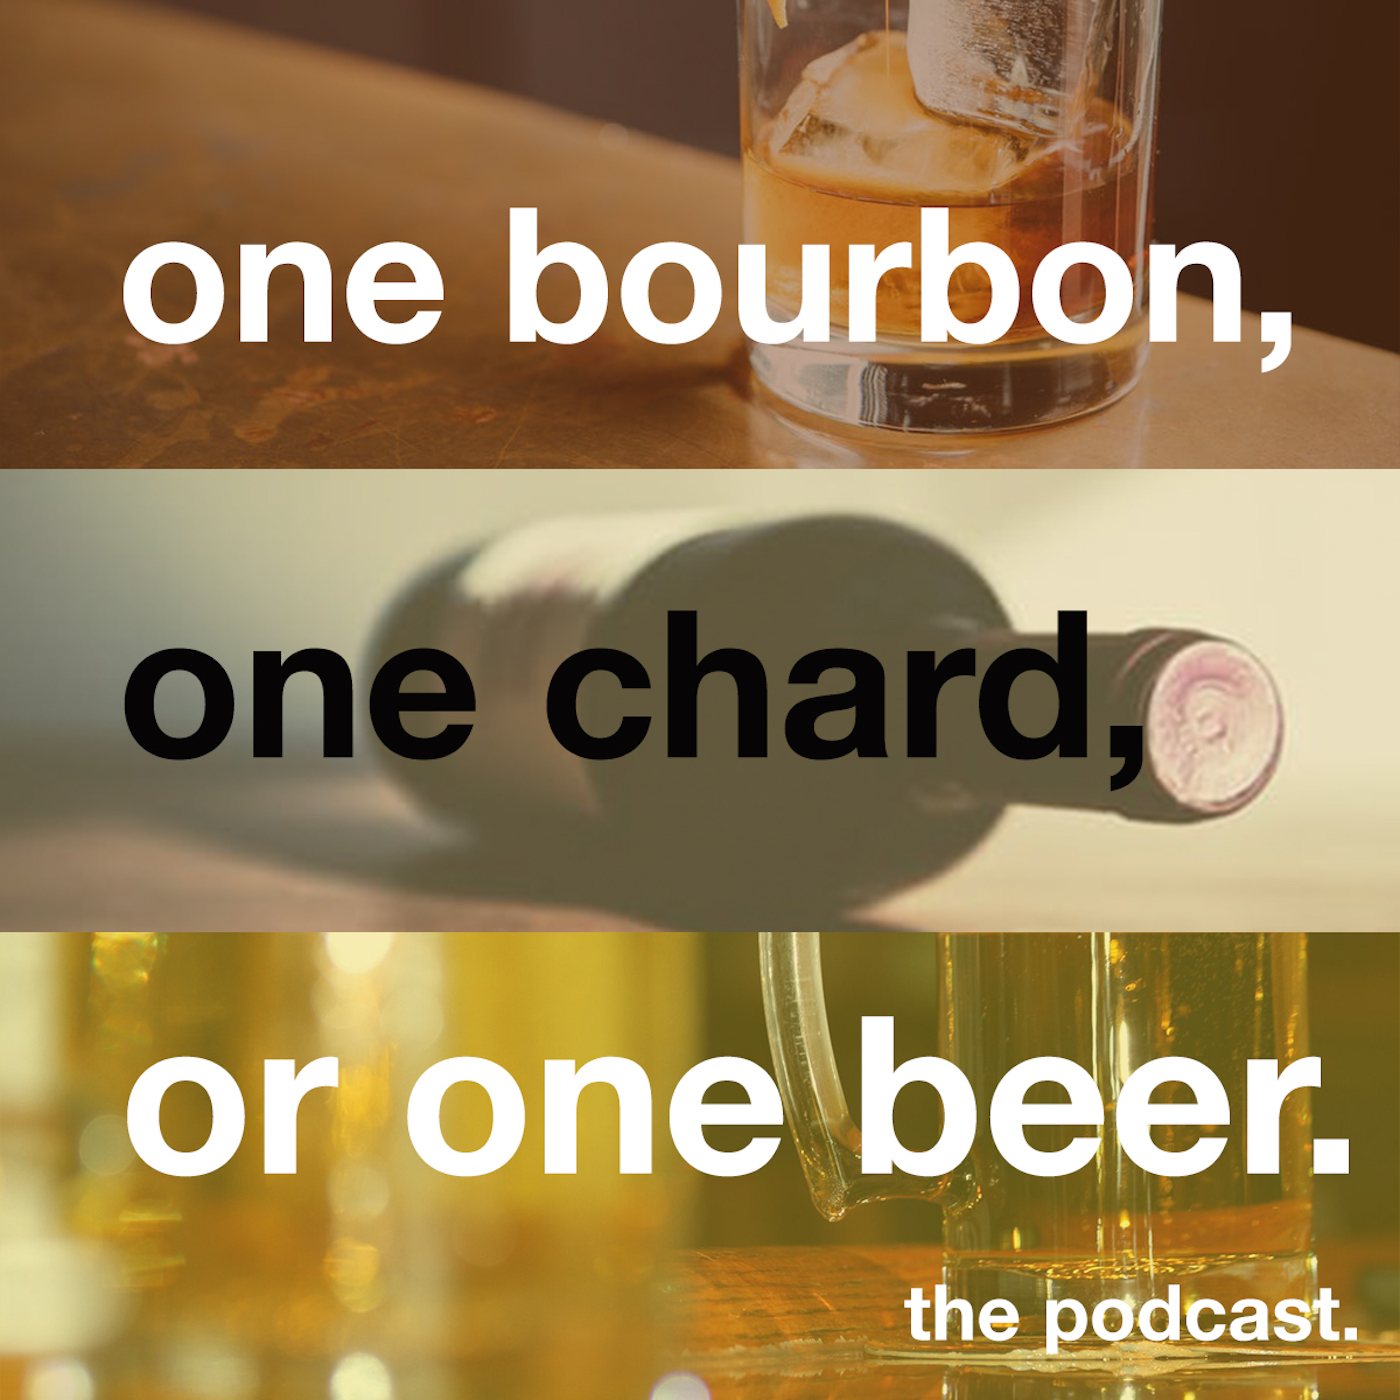 One Bourbon, One Chard, or One Beer show image